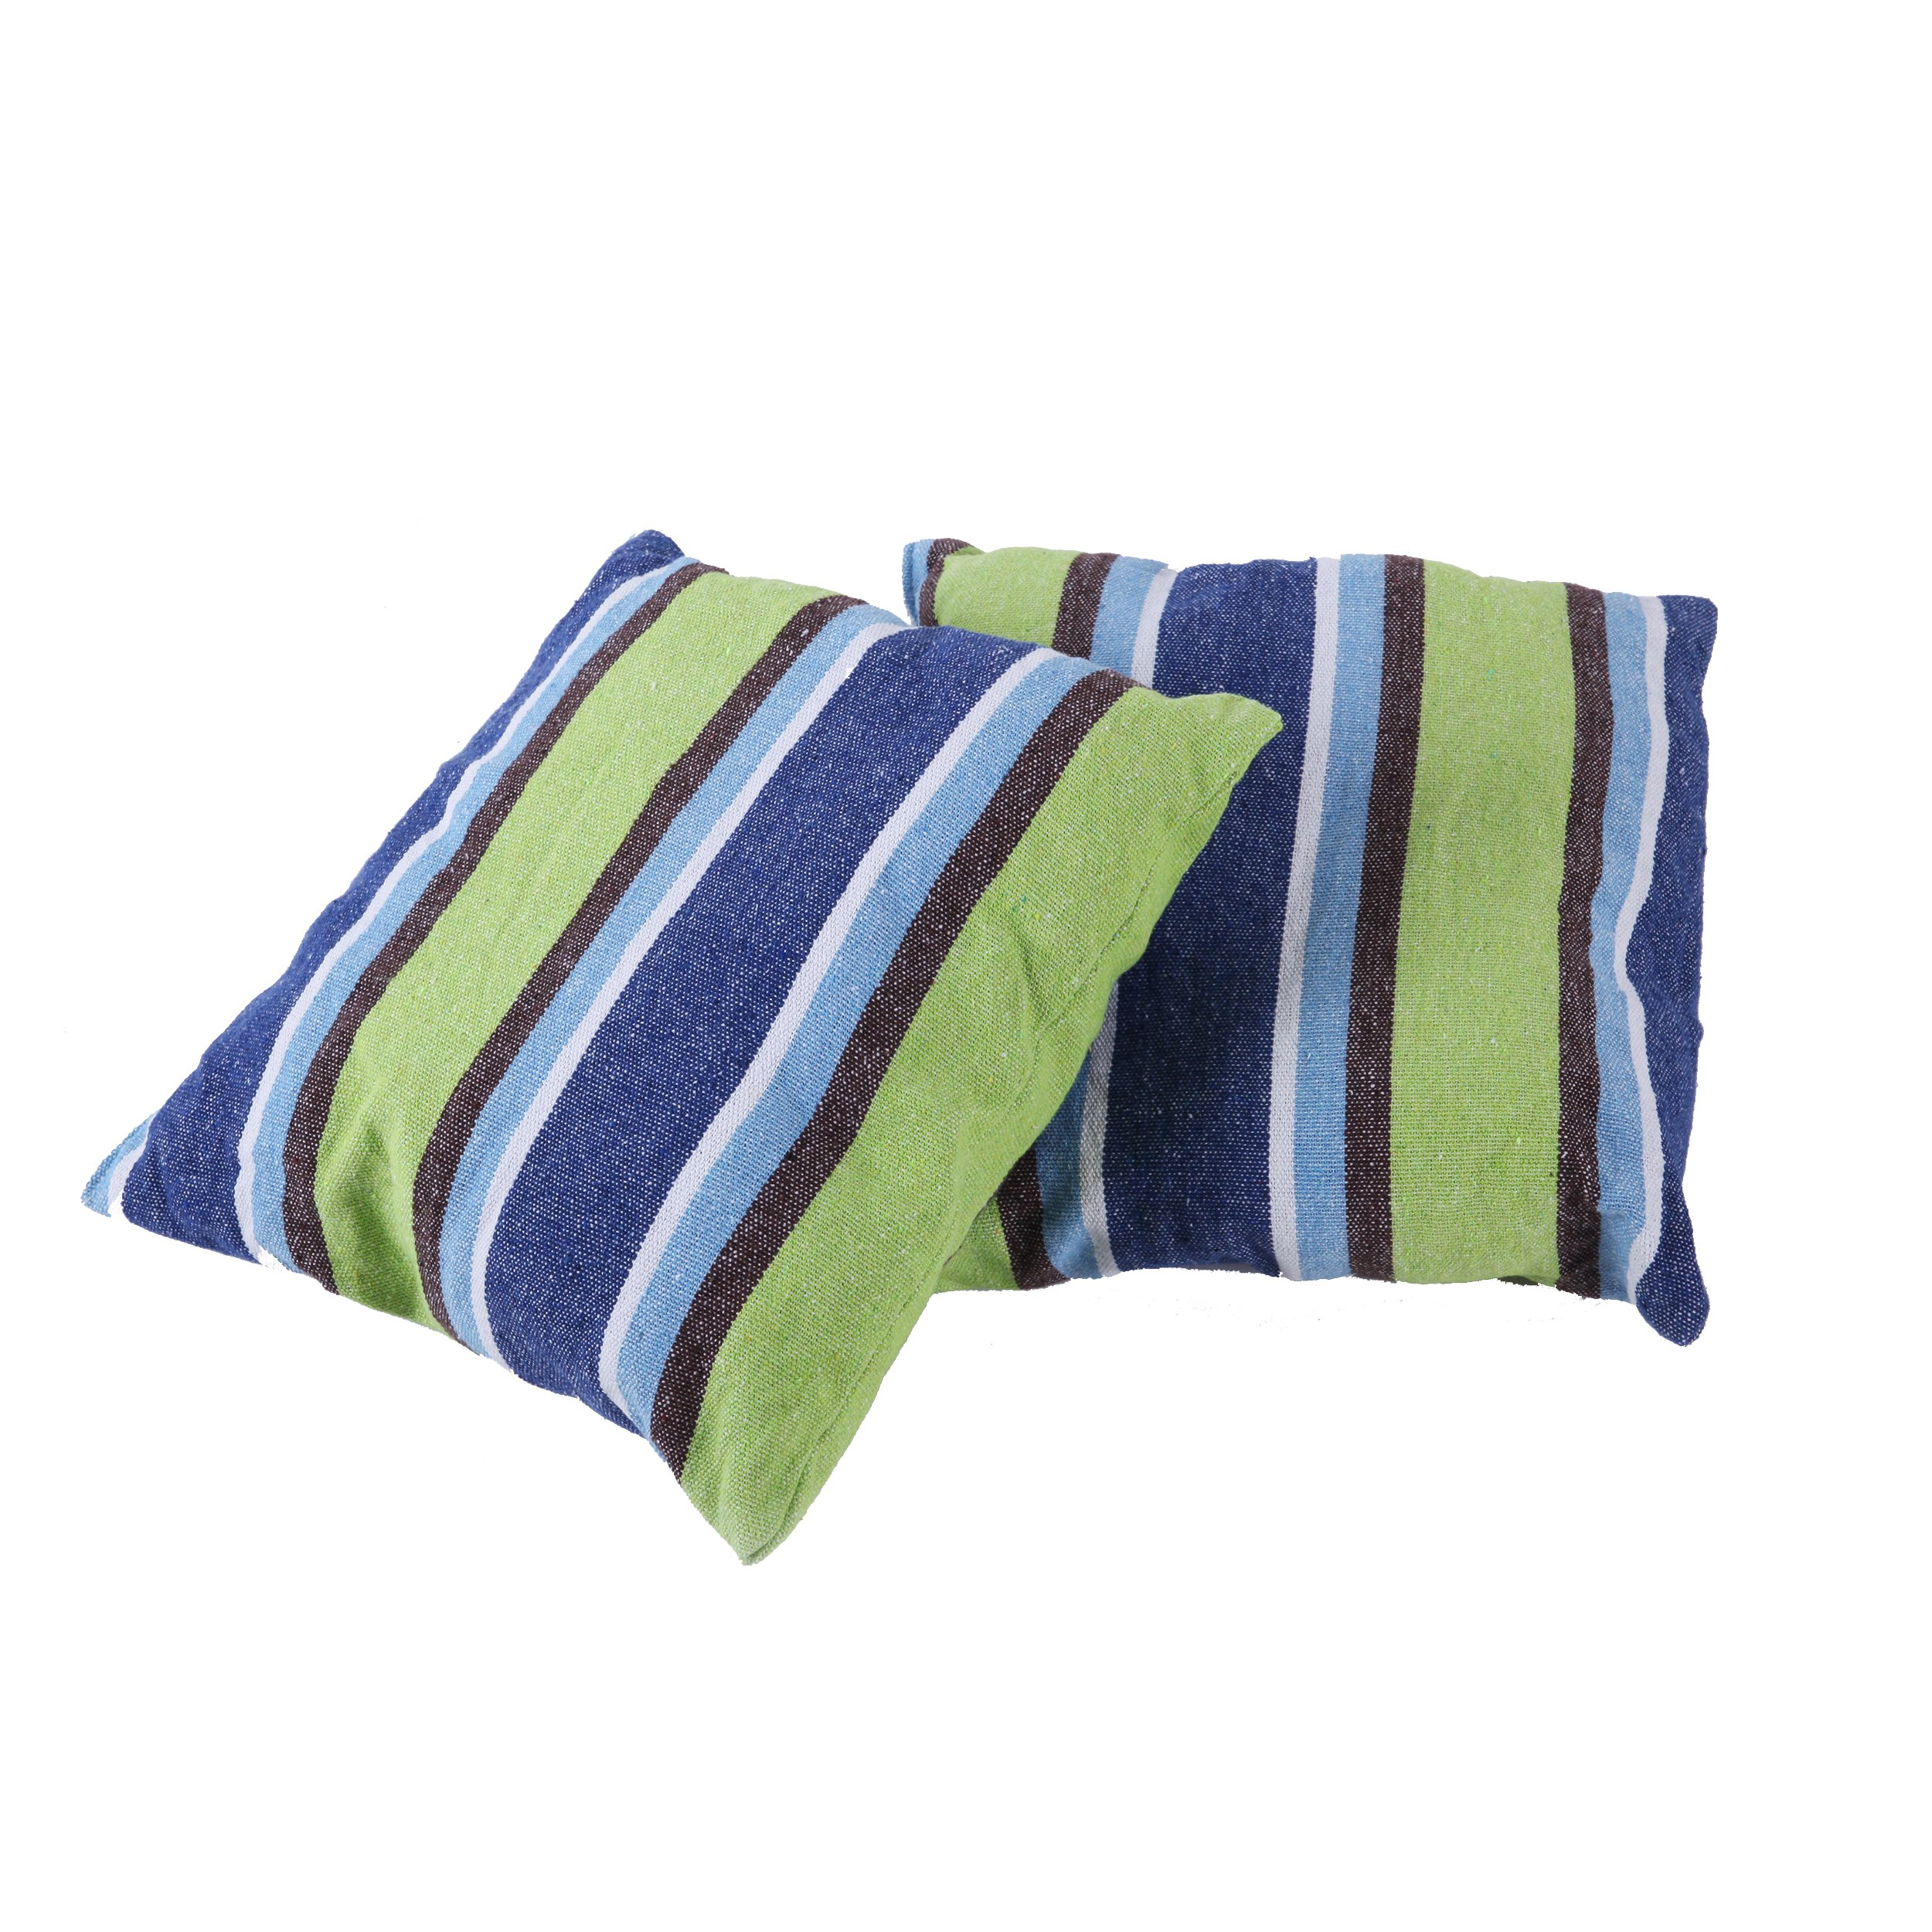 Inspired Home Living 2 Pack 18x18 Pillow Cushions - Blue and Green Striped - Best Used for Hammocks, Hammock Chairs, Patio Swings - Indoor and Outdoor (45x45cm)